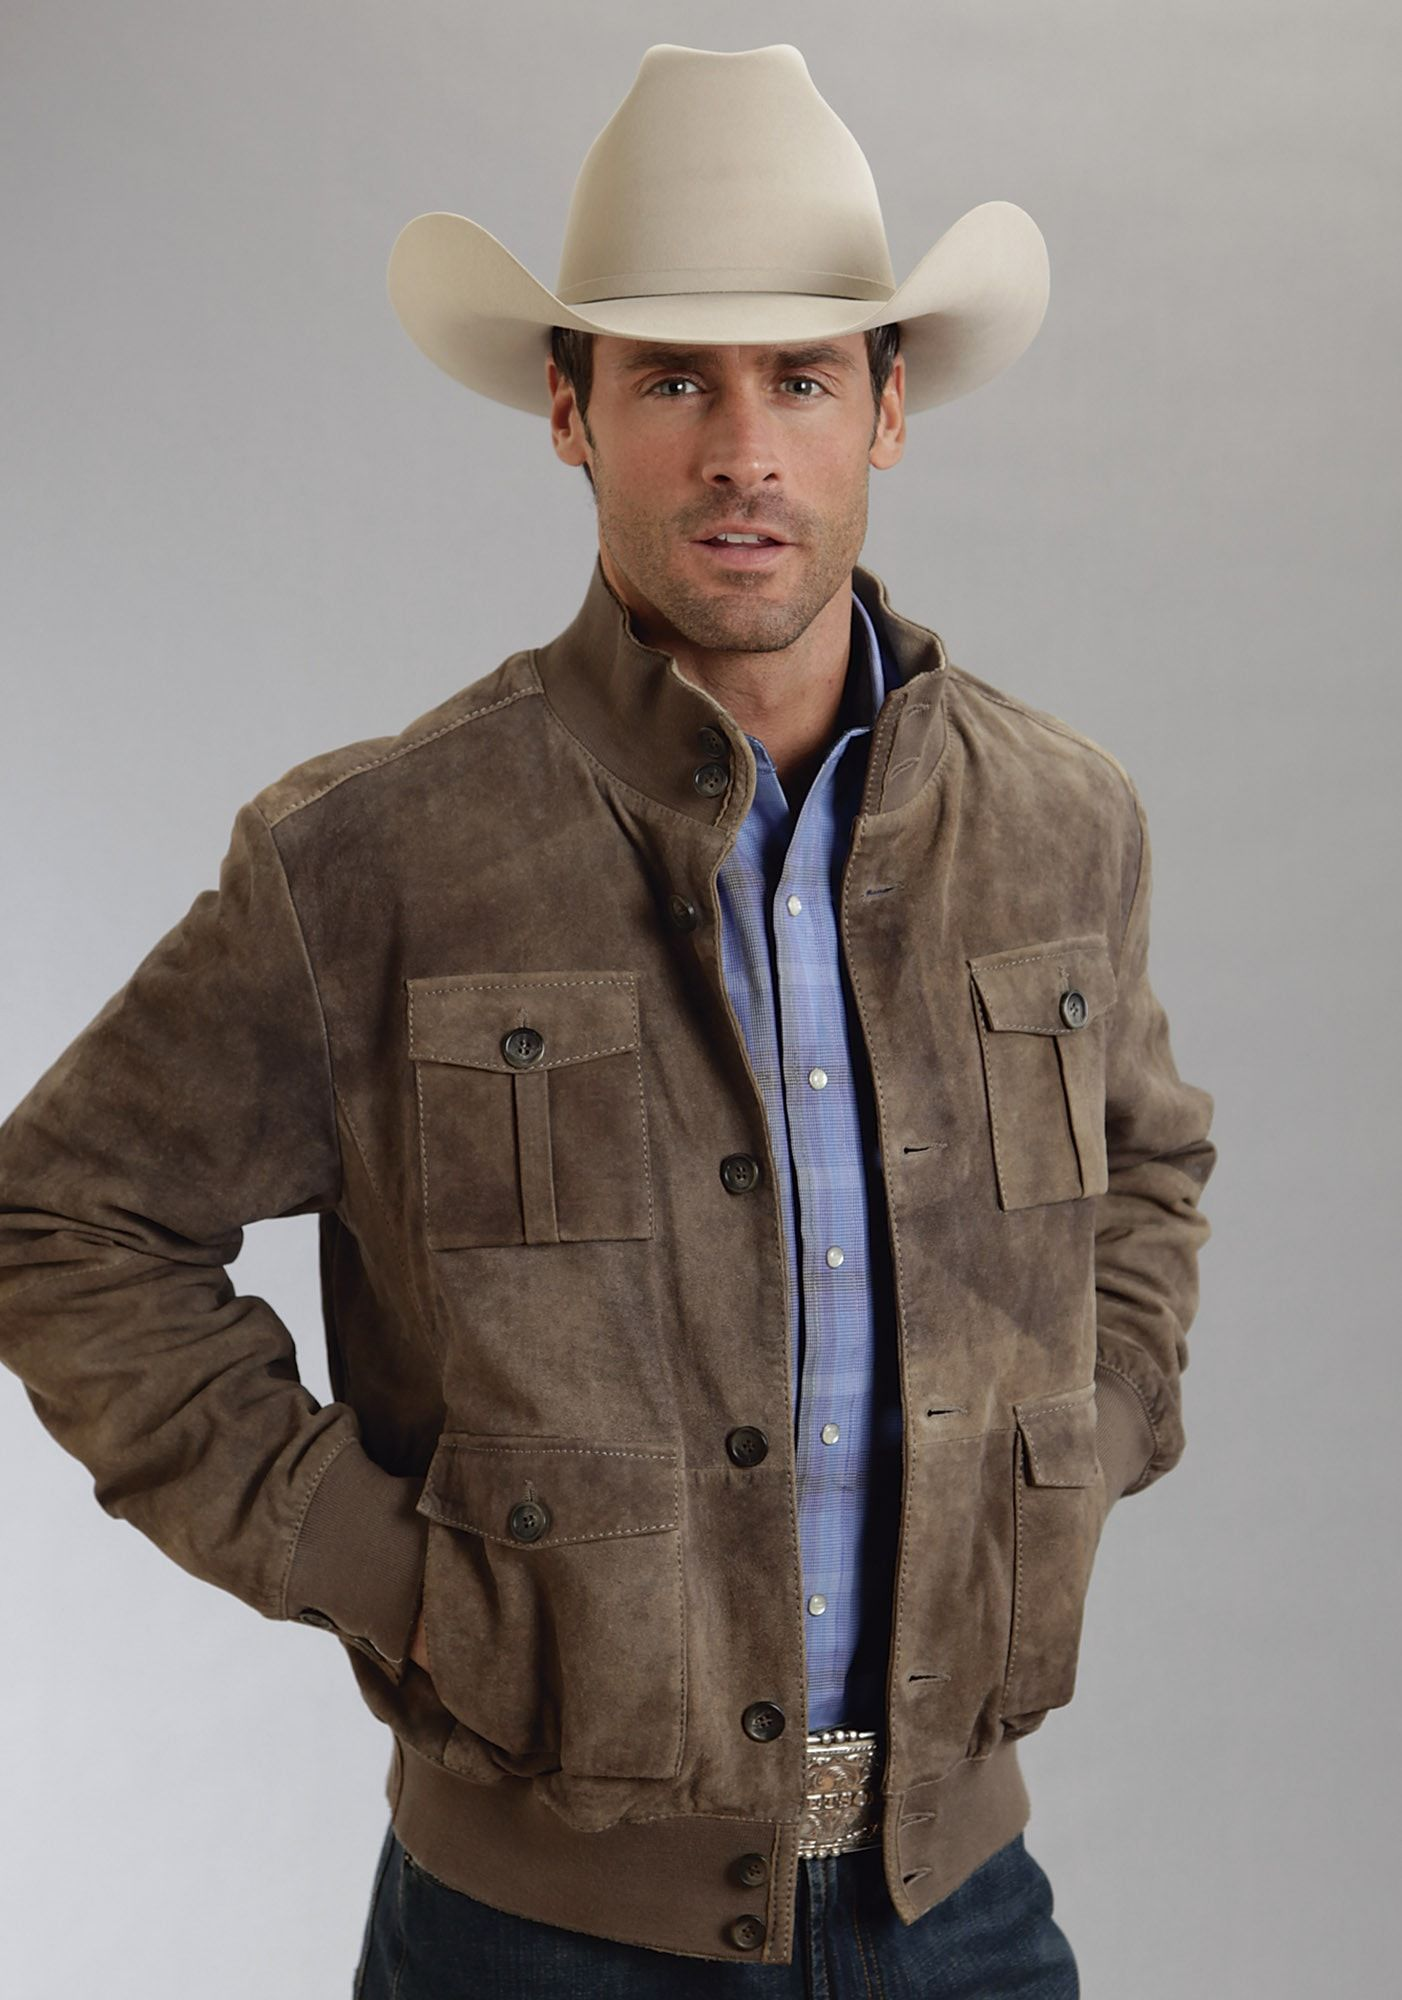 For High Quality Traditional Western Apparel With Lasting Style Look No Suede Jacket Men Cowboy Outfit For Men Cowboy Outfits [ 2000 x 1402 Pixel ]